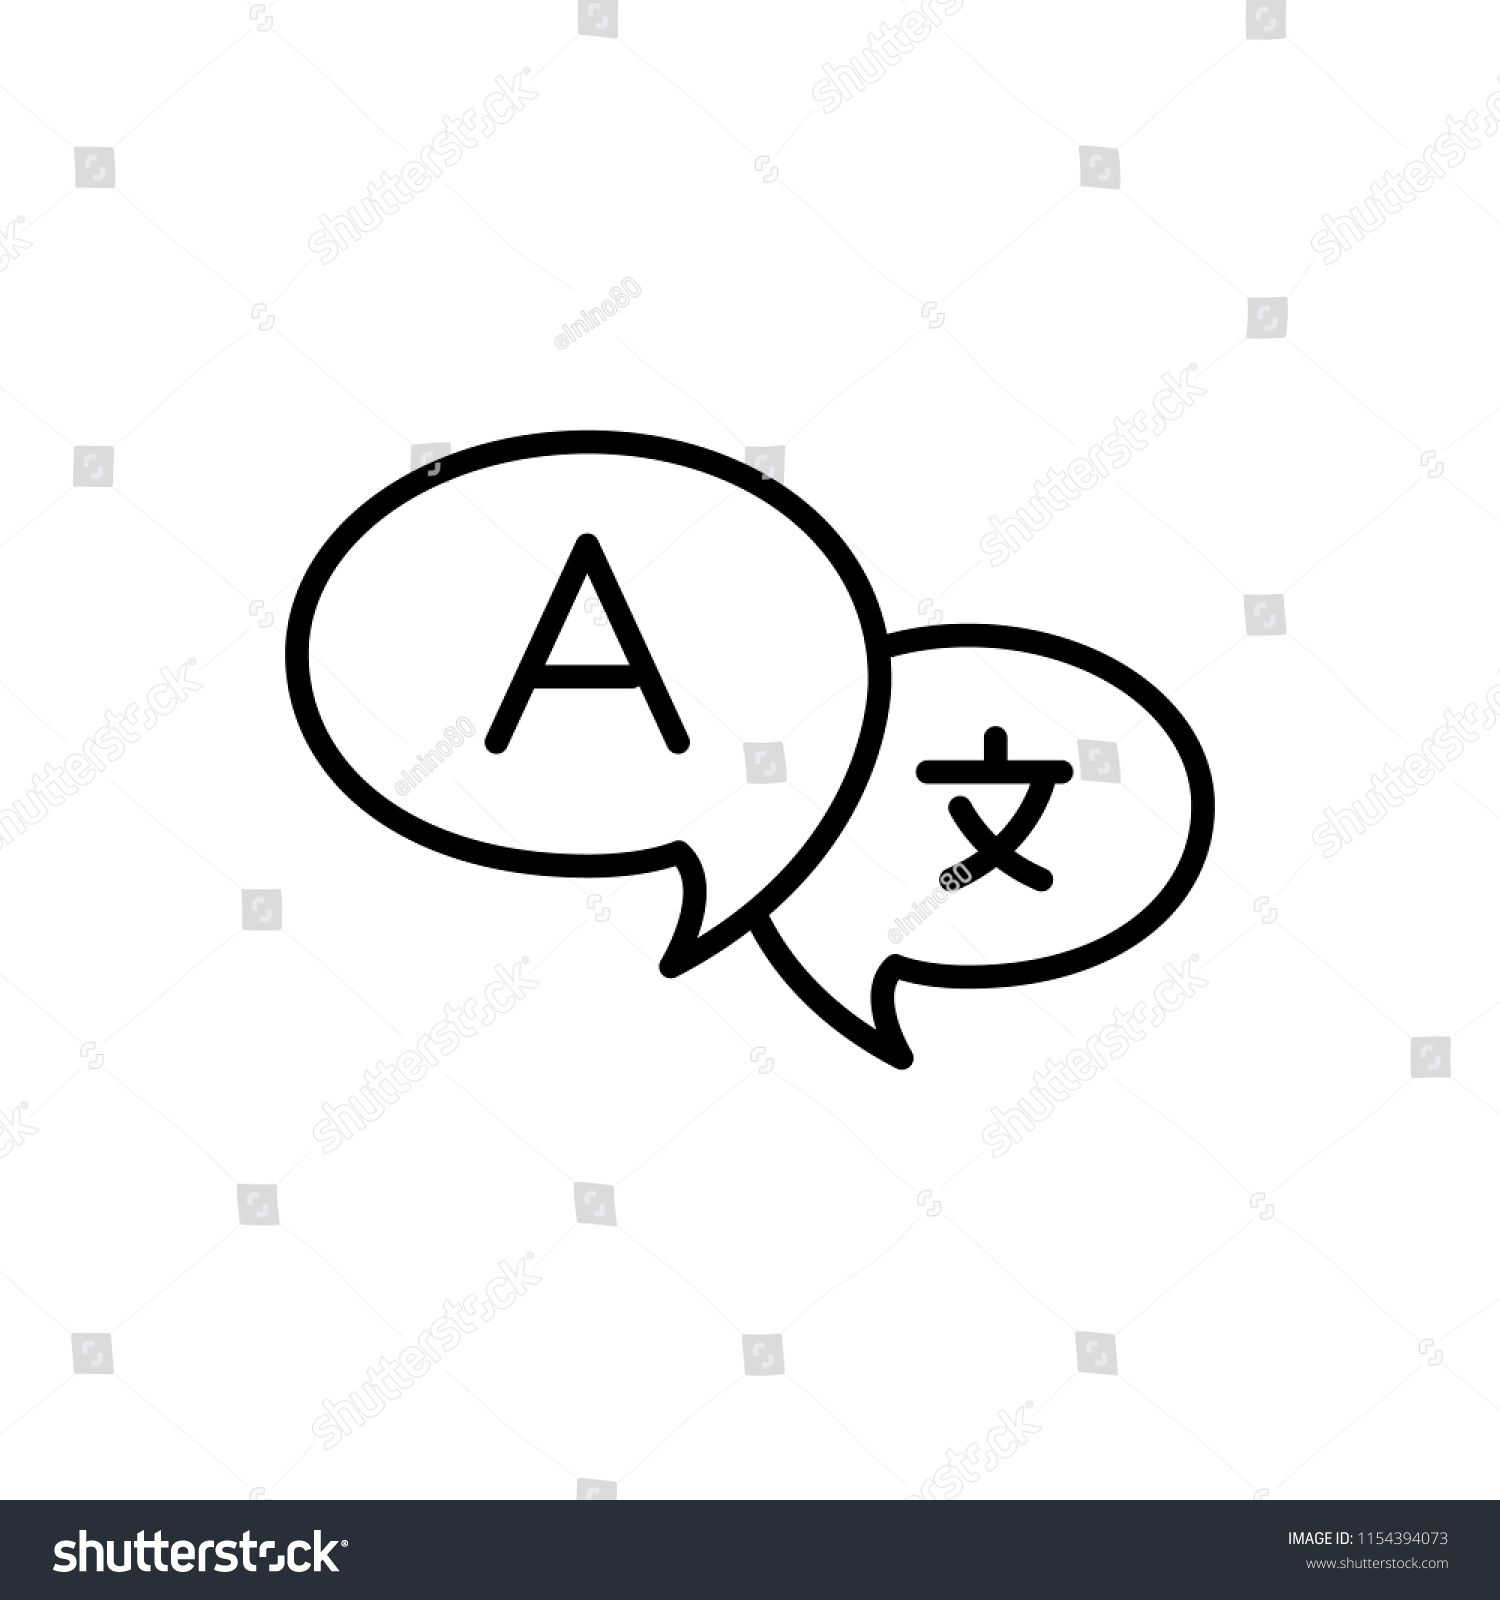 Thin line icon of translate, conversation, chatting  Editable vector